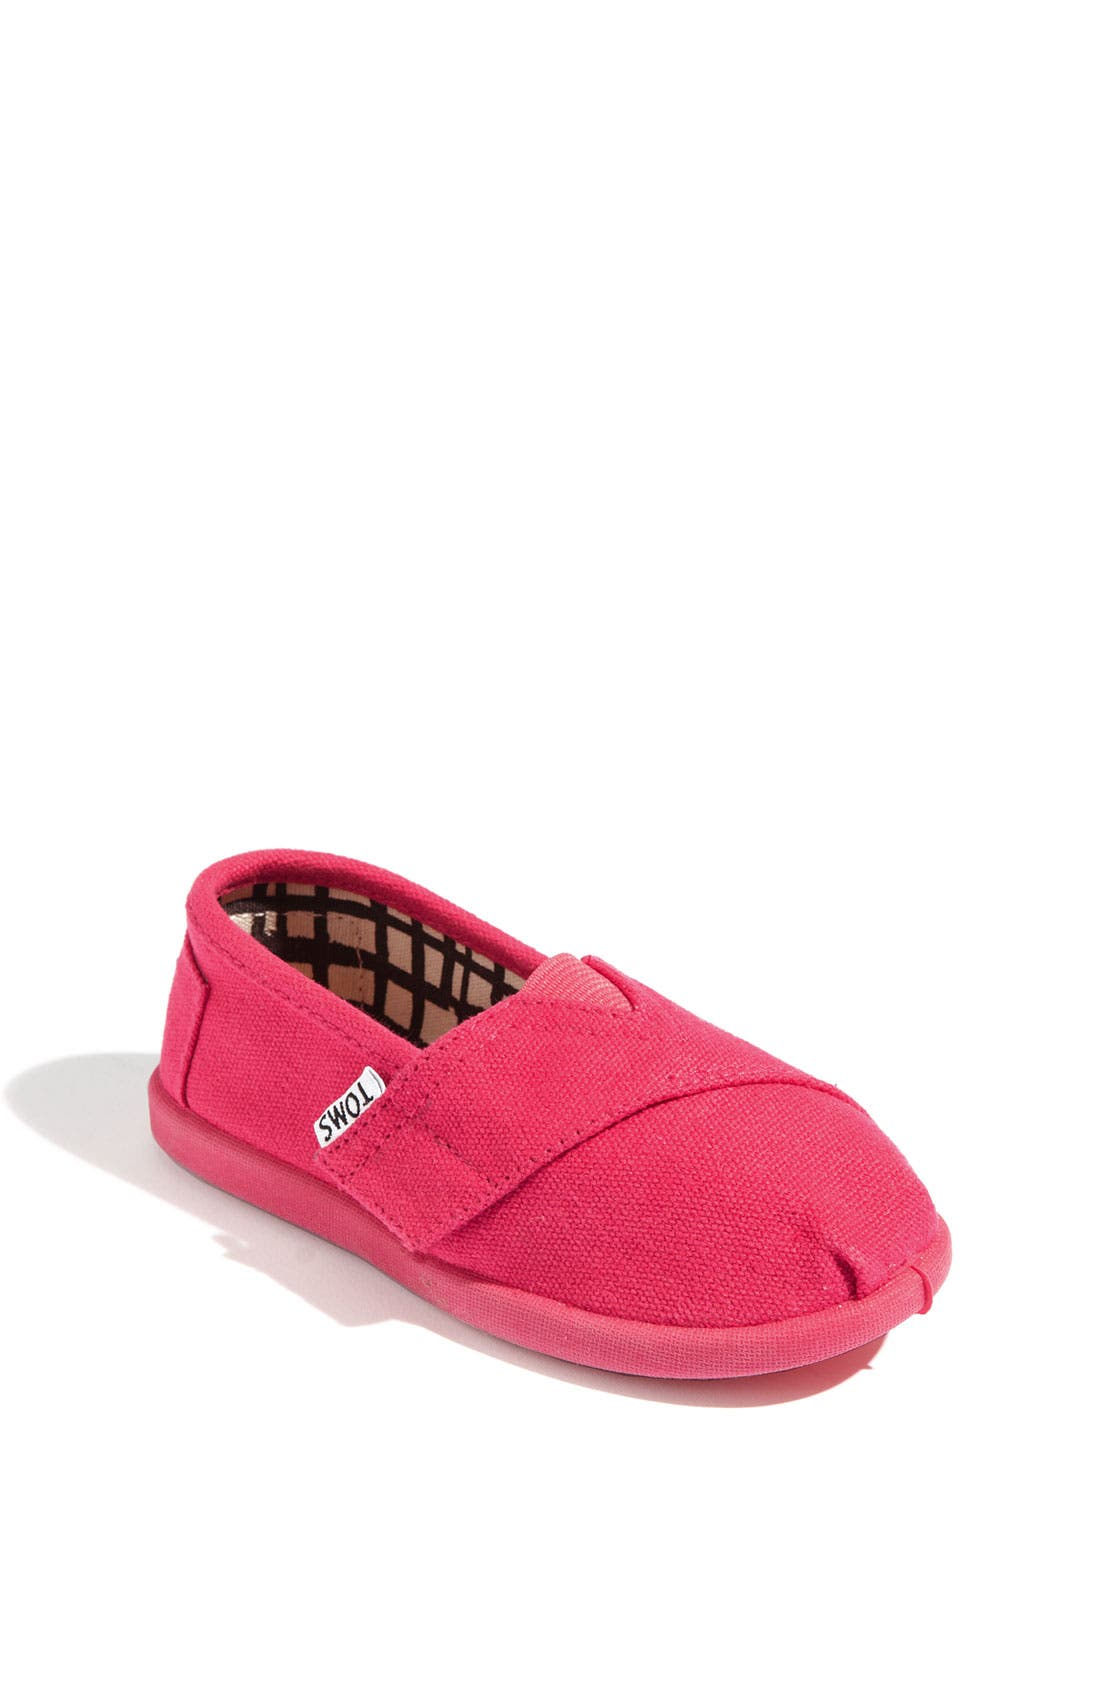 Main Image - TOMS 'Classic - Tiny' Canvas Slip-On (Baby, Walker & Toddler)